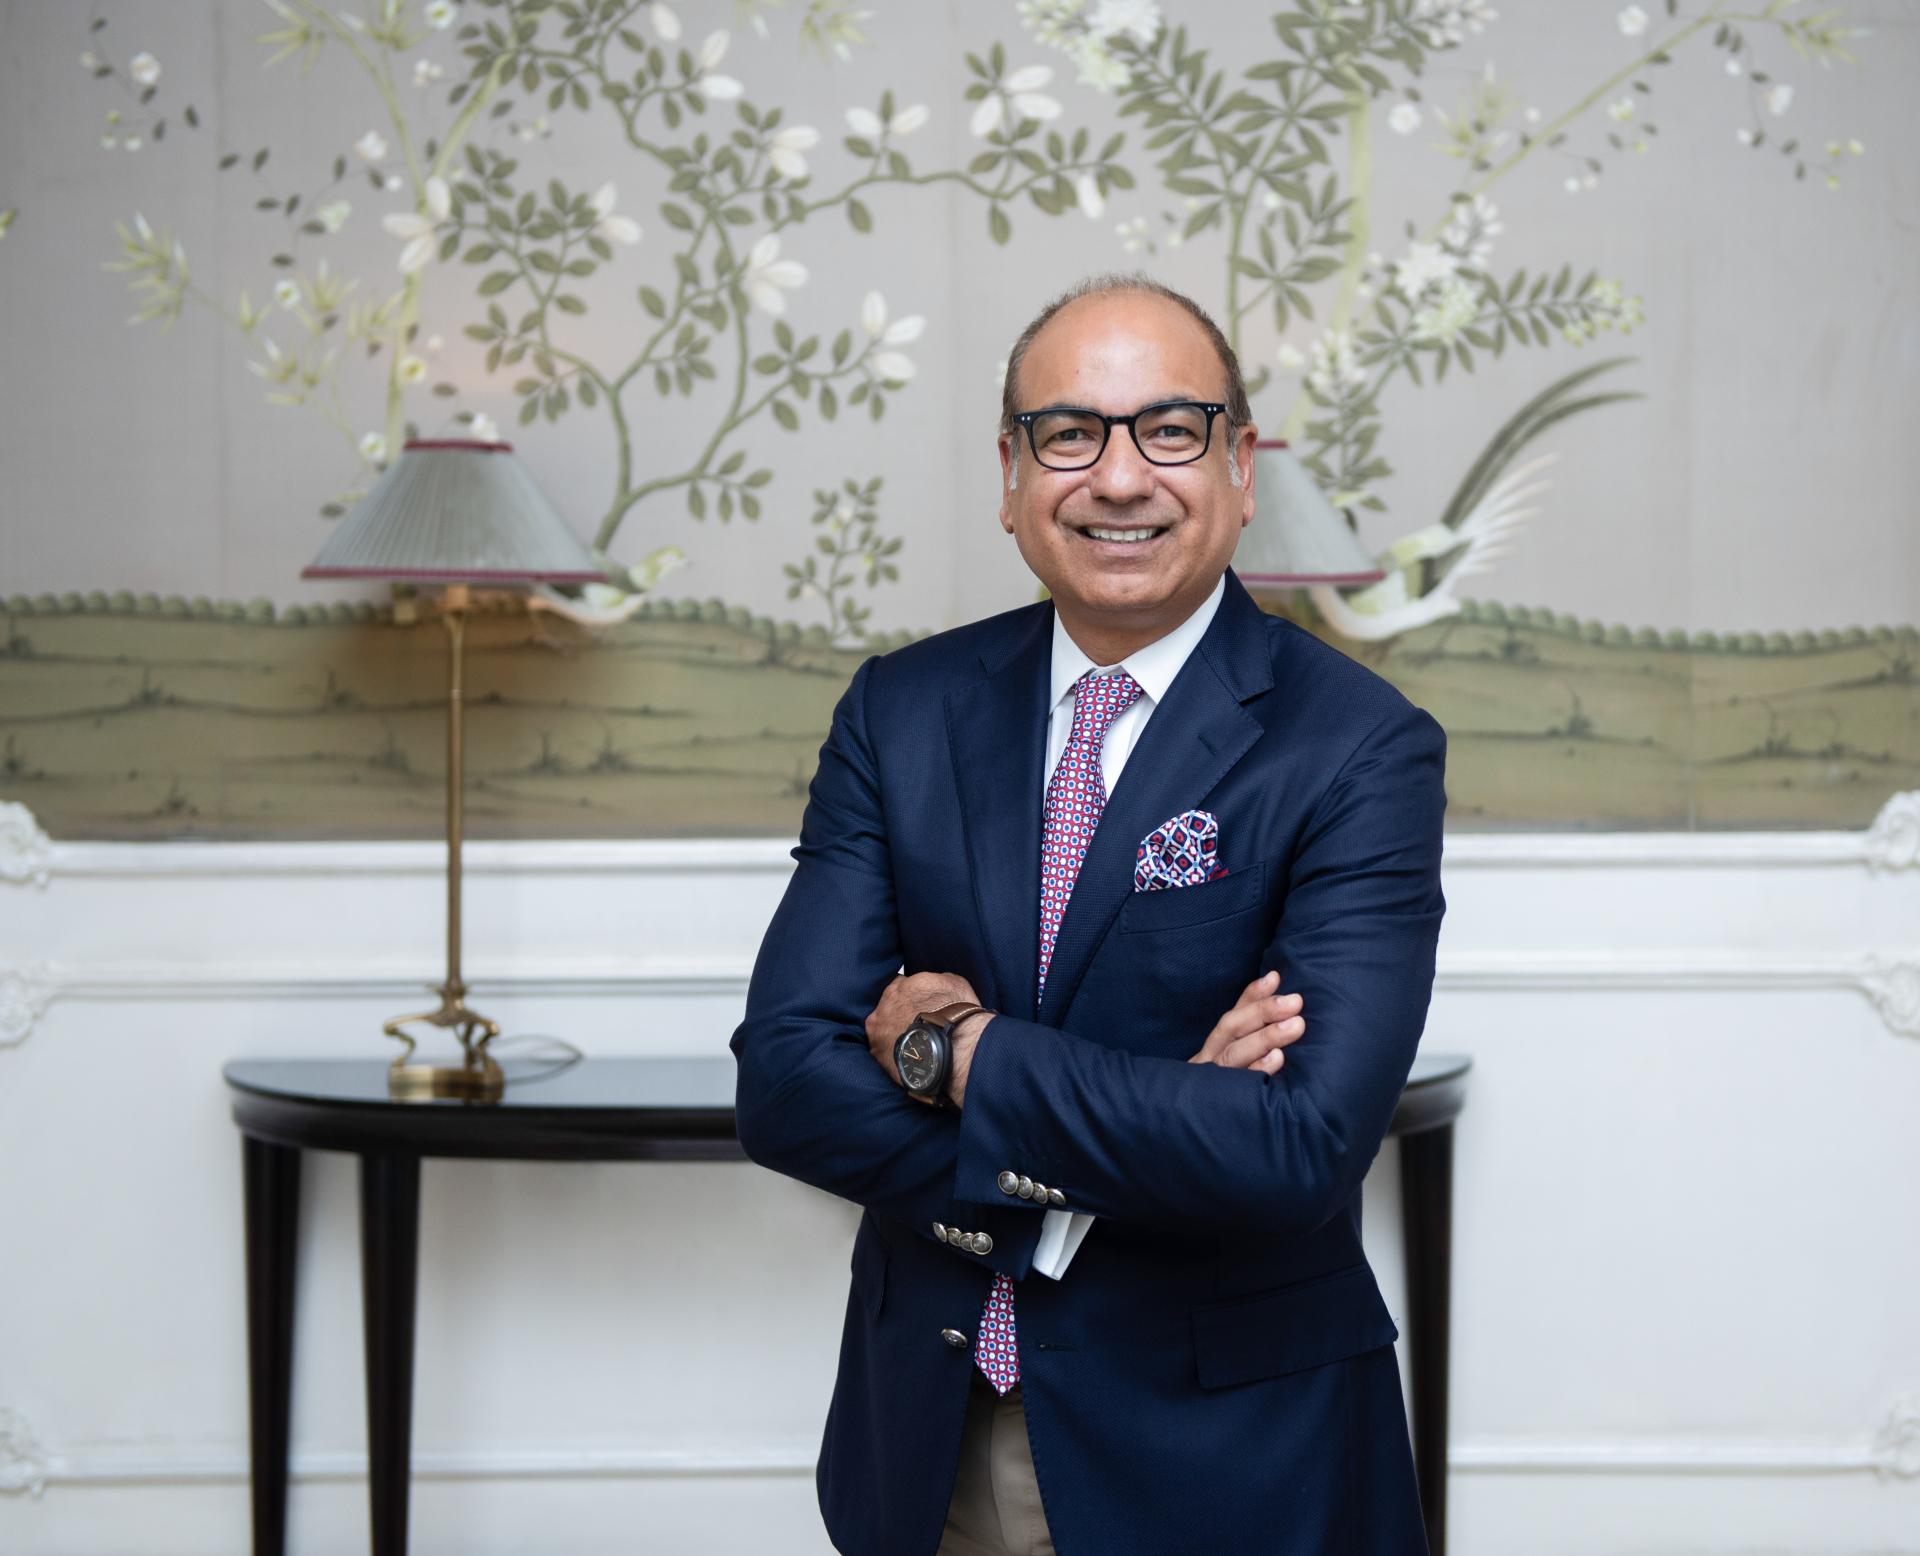 On September 5th Four Seasons Hotel Baku welcomed its new General Manager – Mr. Bob Suri (PHOTO)